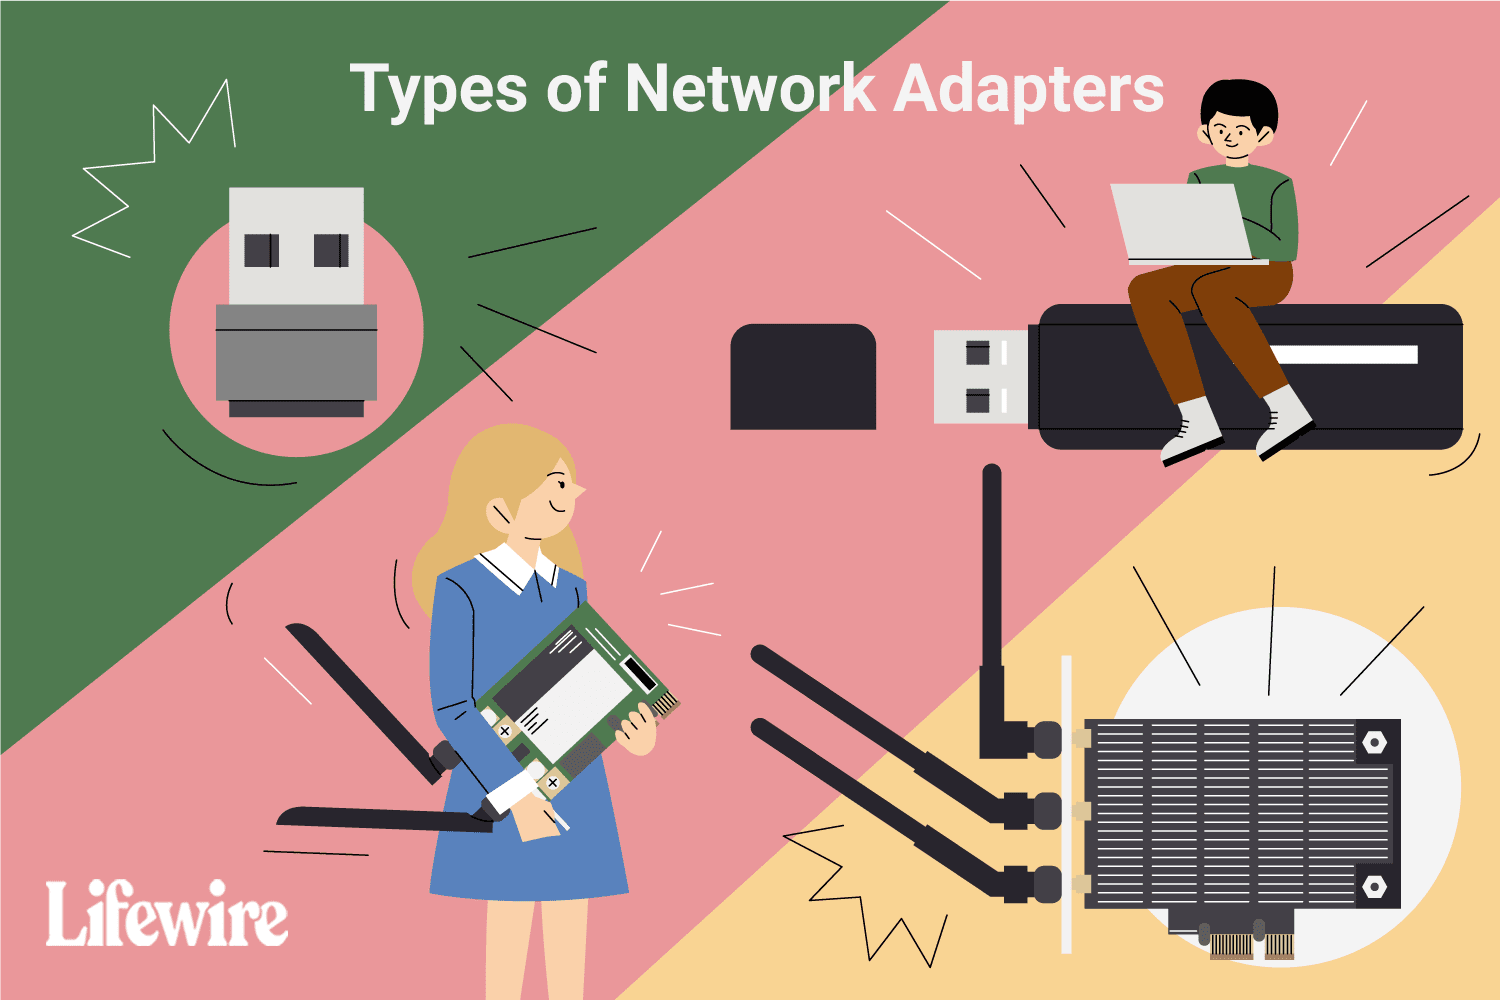 The different types of network adapters.